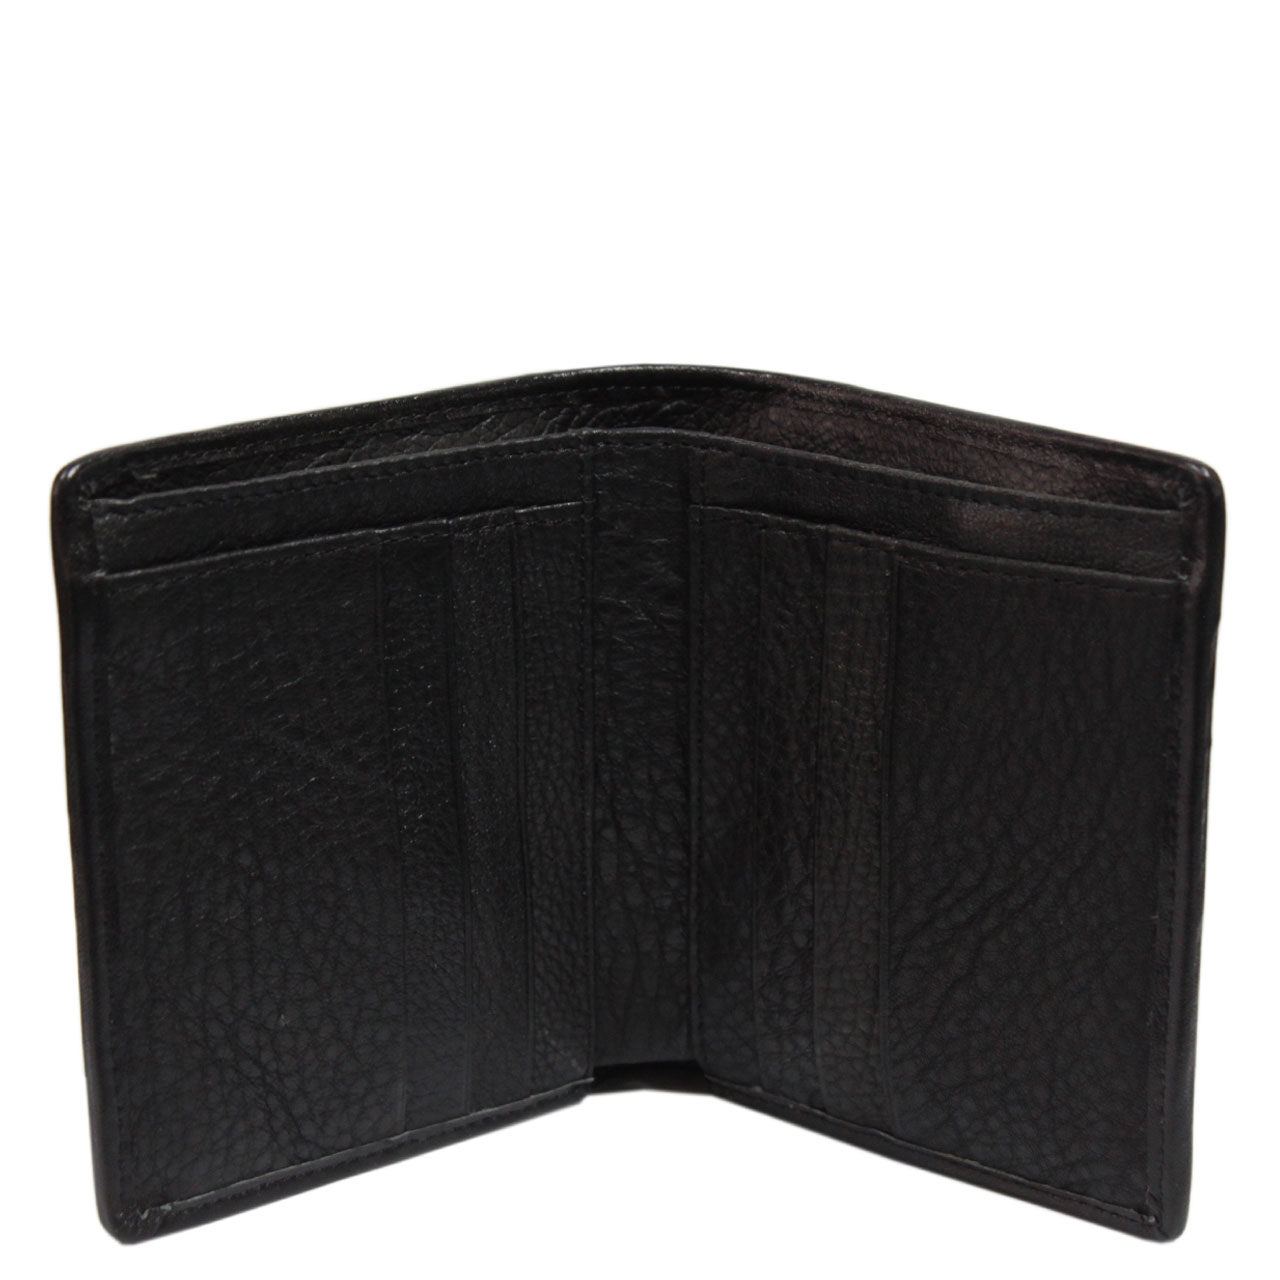 Ostrich Leather Wallet E405b